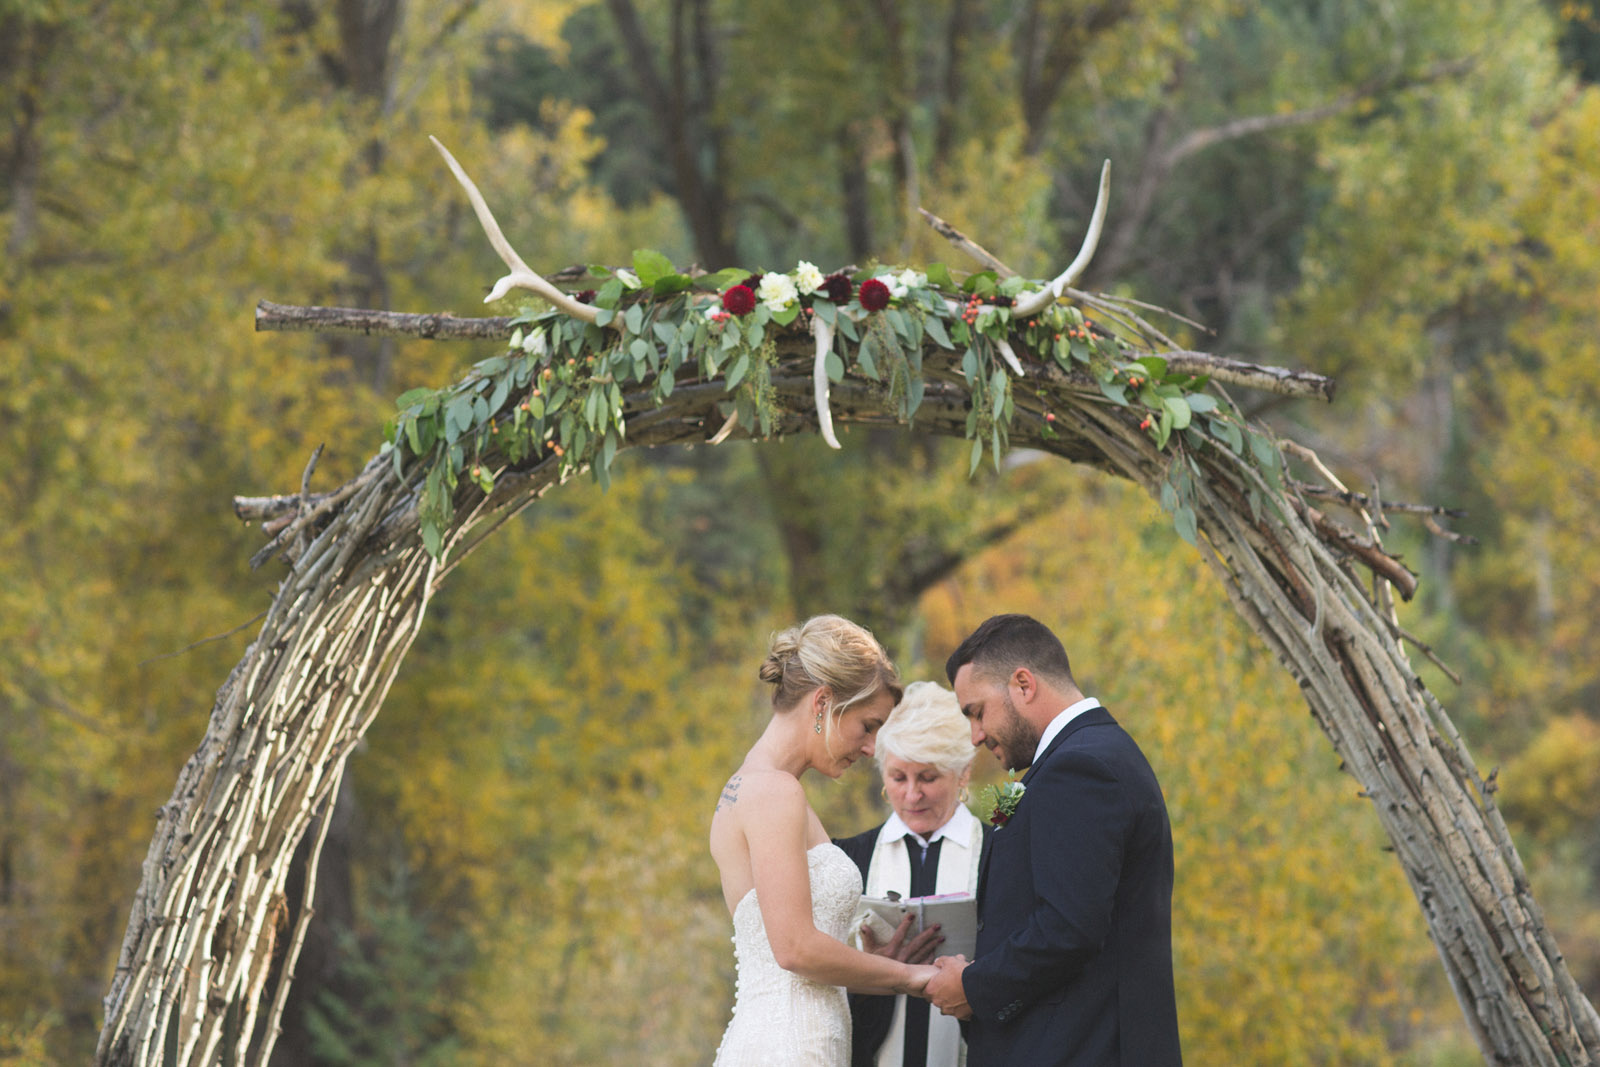 bride and groom praying during private elopement wedding ceremony in durango co forest